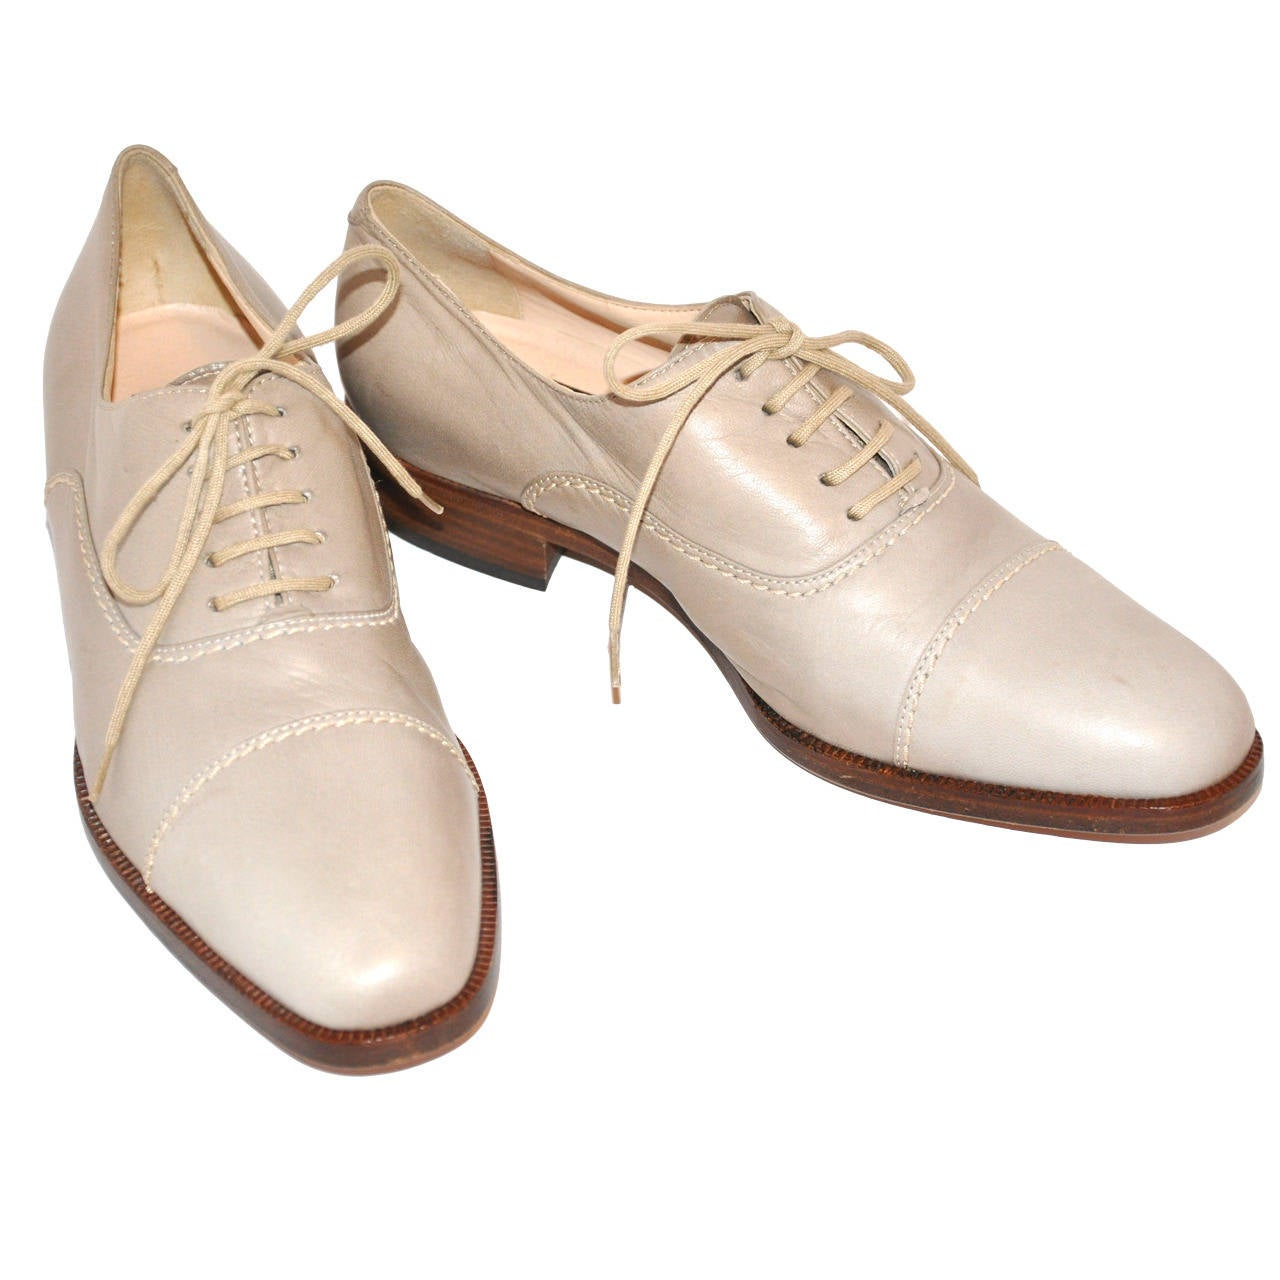 Susan Bennis Warren Edwards Hand-Made Lace-Up Shoes For Sale